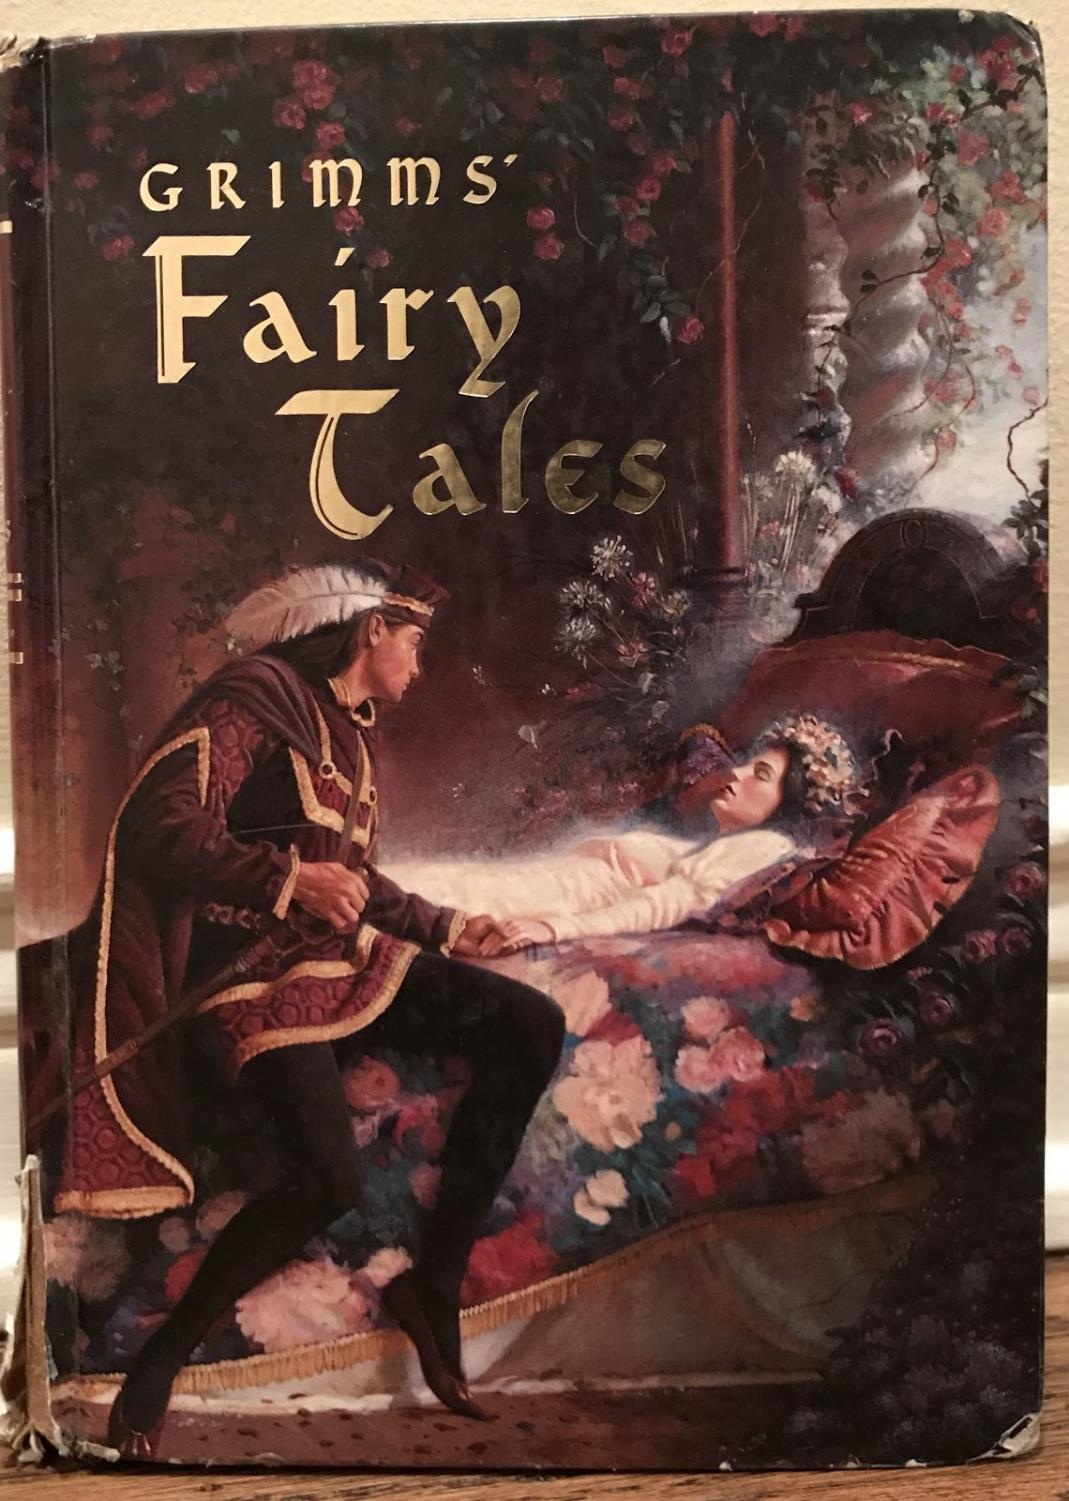 My copy of Grimms' Fairy Tales. My elementary school allowed me to keep this copy because it was falling apart.